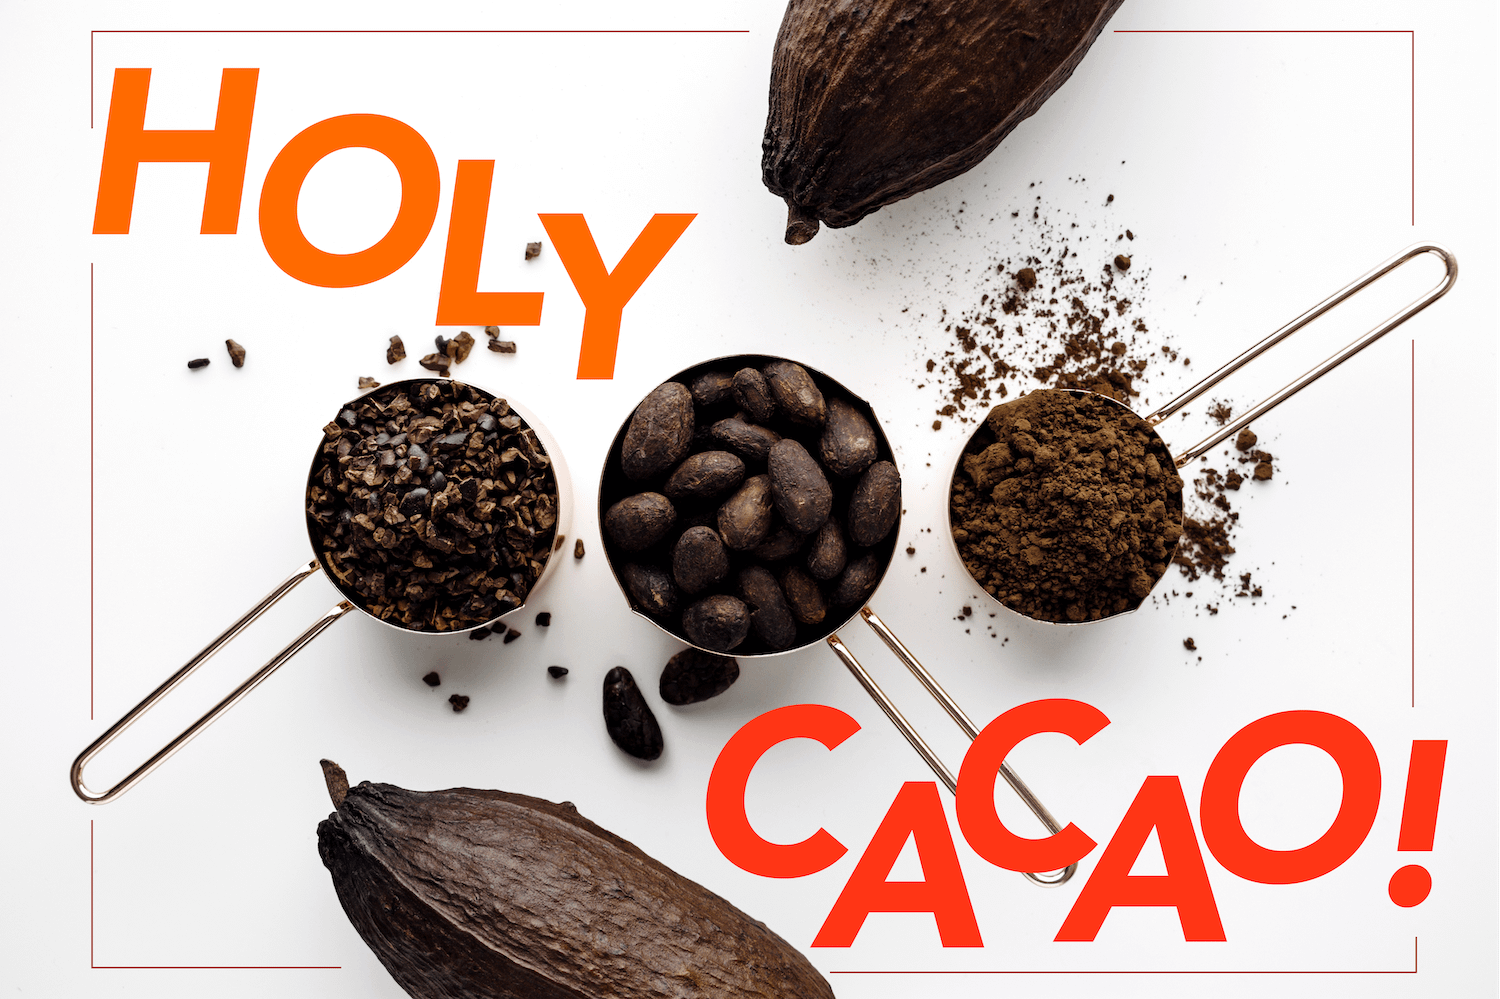 Mixed media graphic, Holy Cacao! Text with cacao beans, cacao powder, cacao pods, cacao nibs in measuring cups.